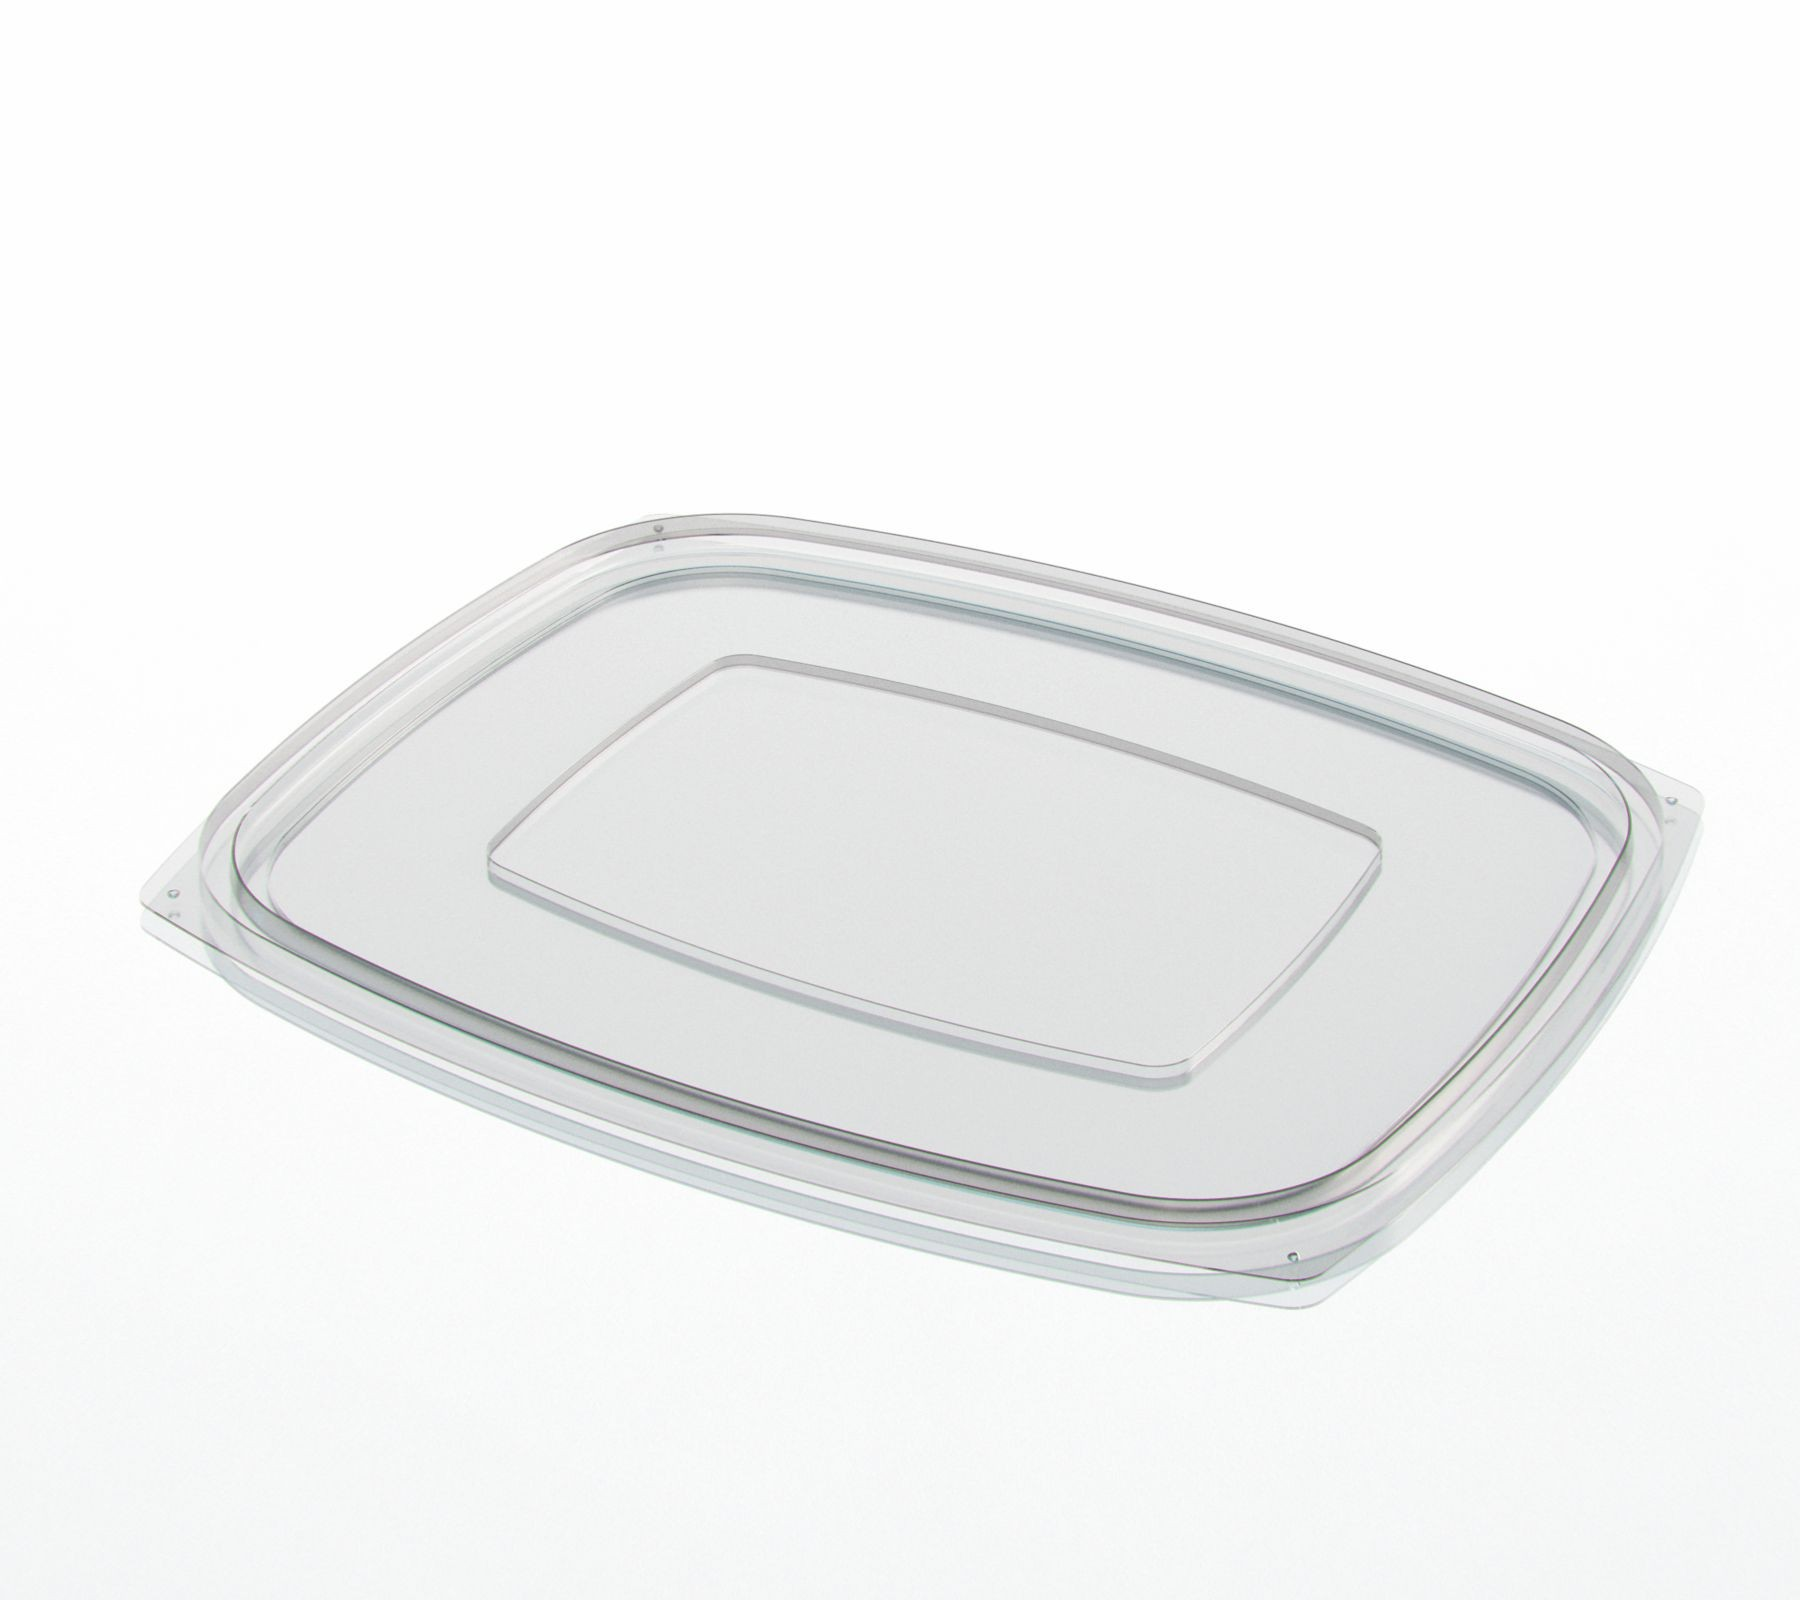 Flat Lid for Deli Containers 900cc to 1,500cc - 30 oz  to 48 oz